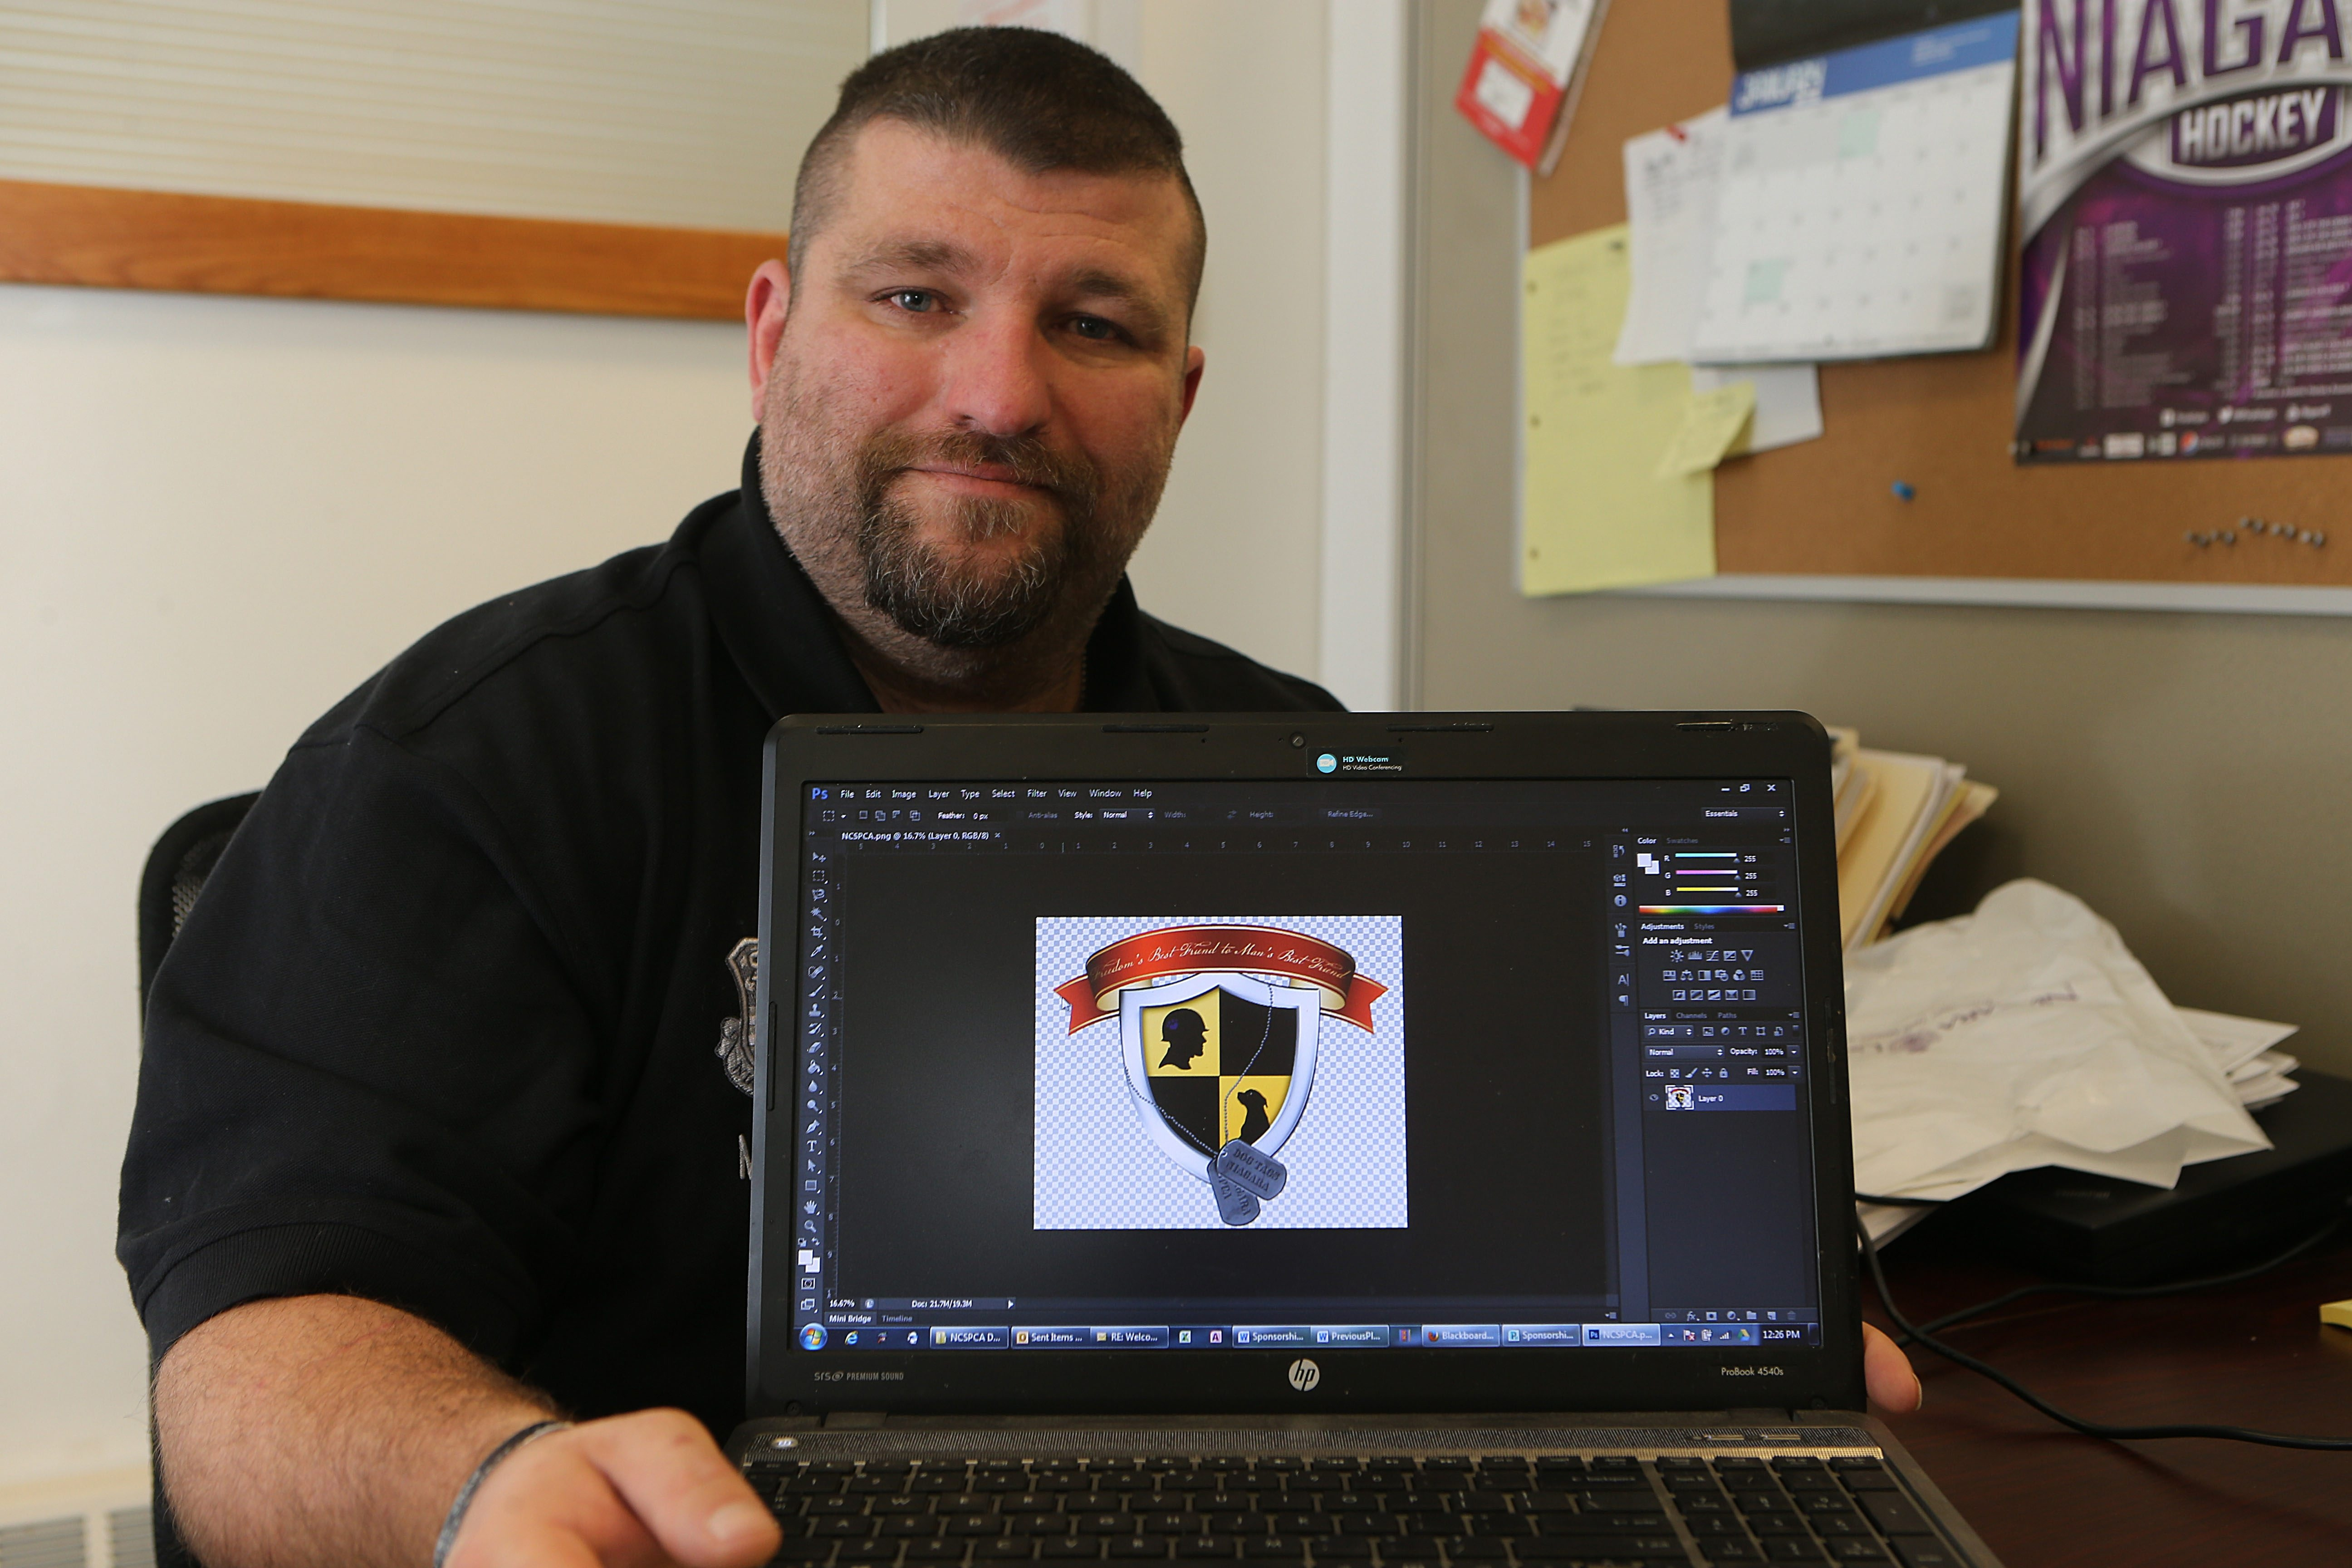 Karl Hinterberger in the Veterans Services Office in St. Vincent's Hall on the Niagara University campus in Lewiston with the design he created for Dog Tags Niagara, a veterans rehabilitation program.